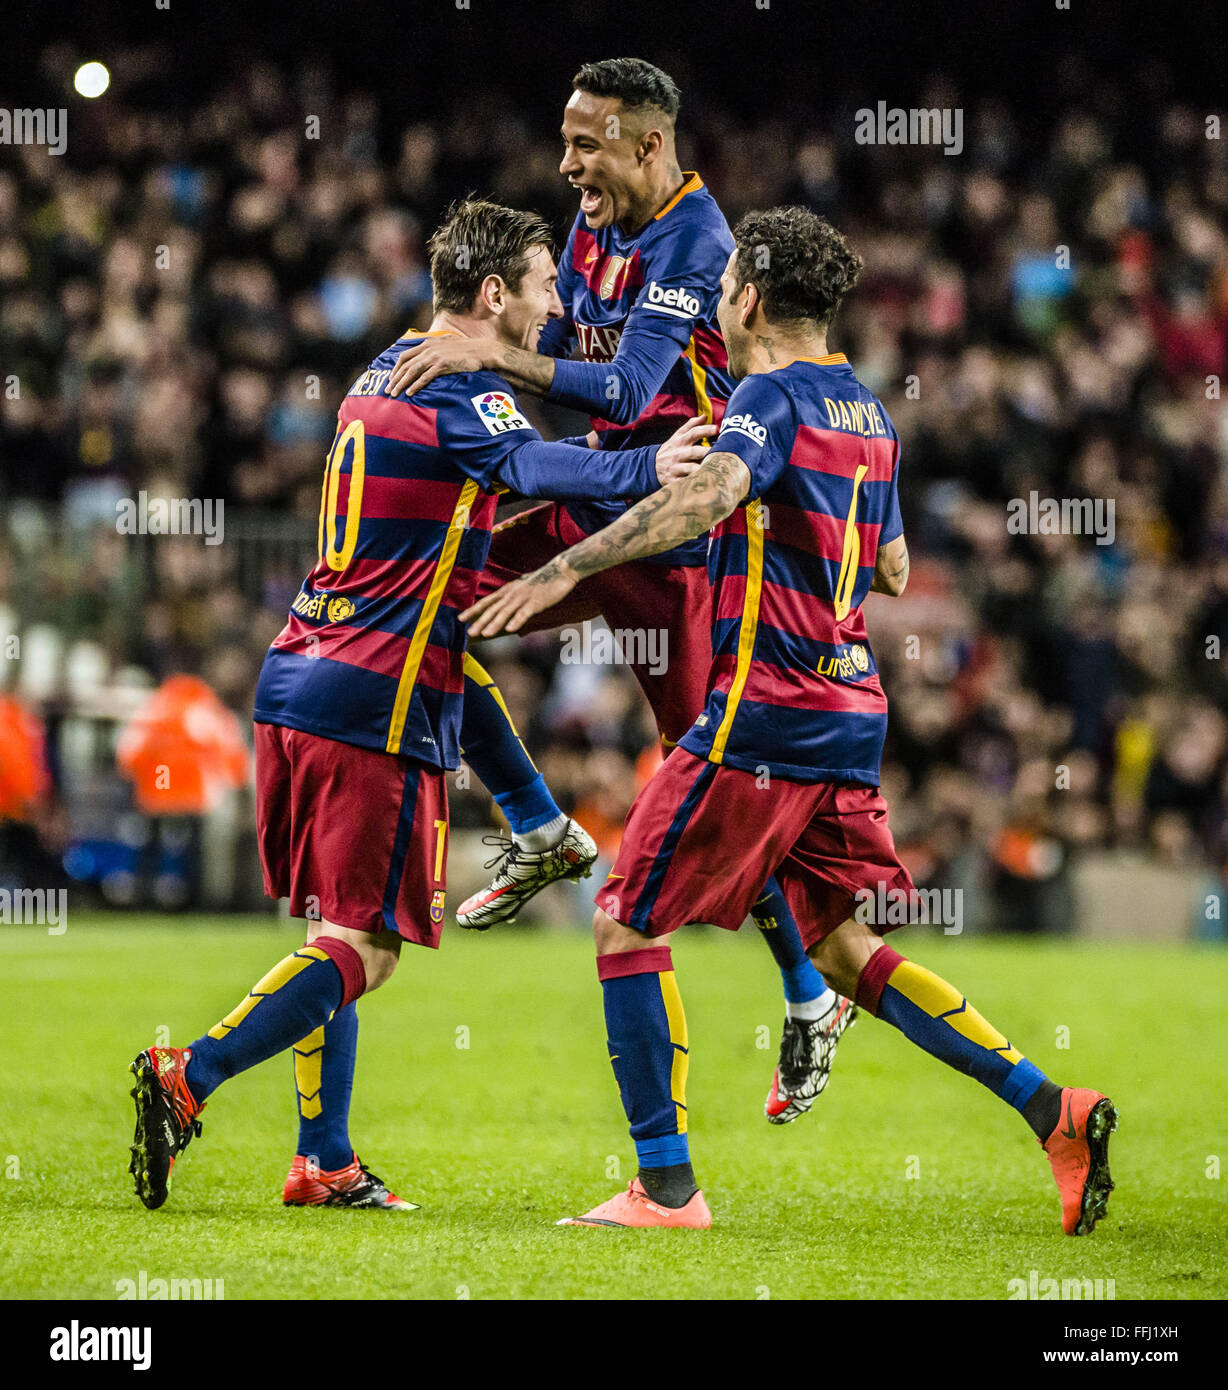 Barcelona Vs Celta Vigo Goals Today: Vigo Players Stock Photos & Vigo Players Stock Images